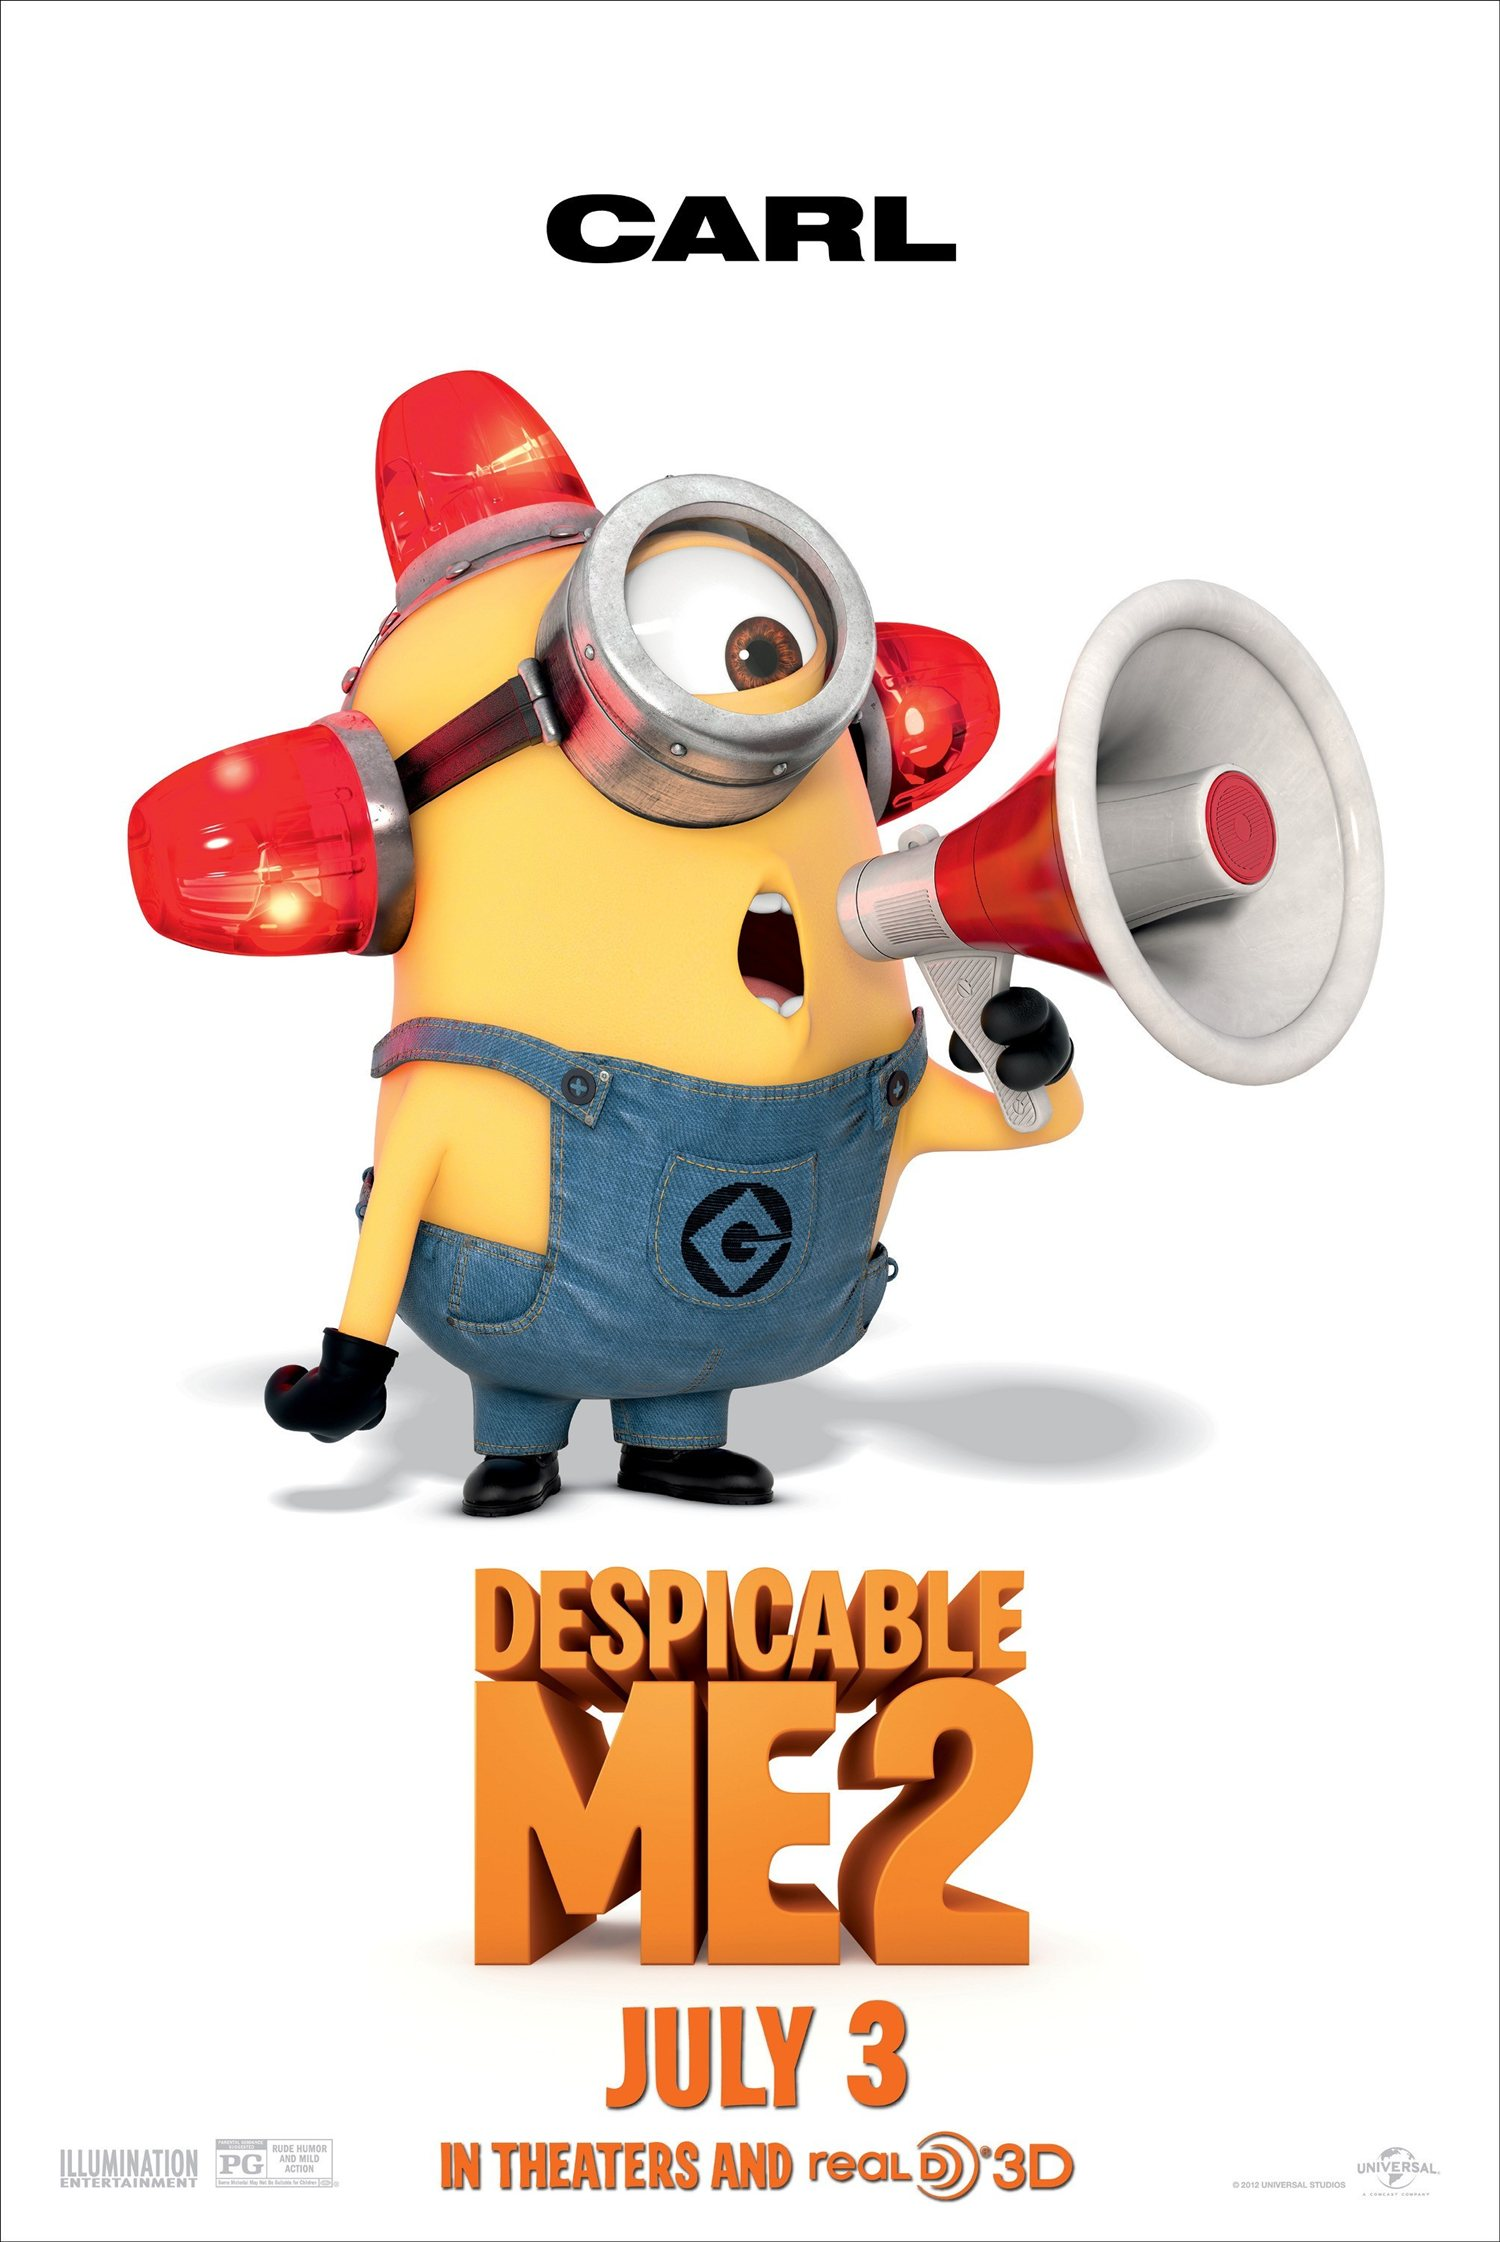 Image gru png despicable me wiki - Image Despicable Me 2 Carl The Minion Poster Jpg